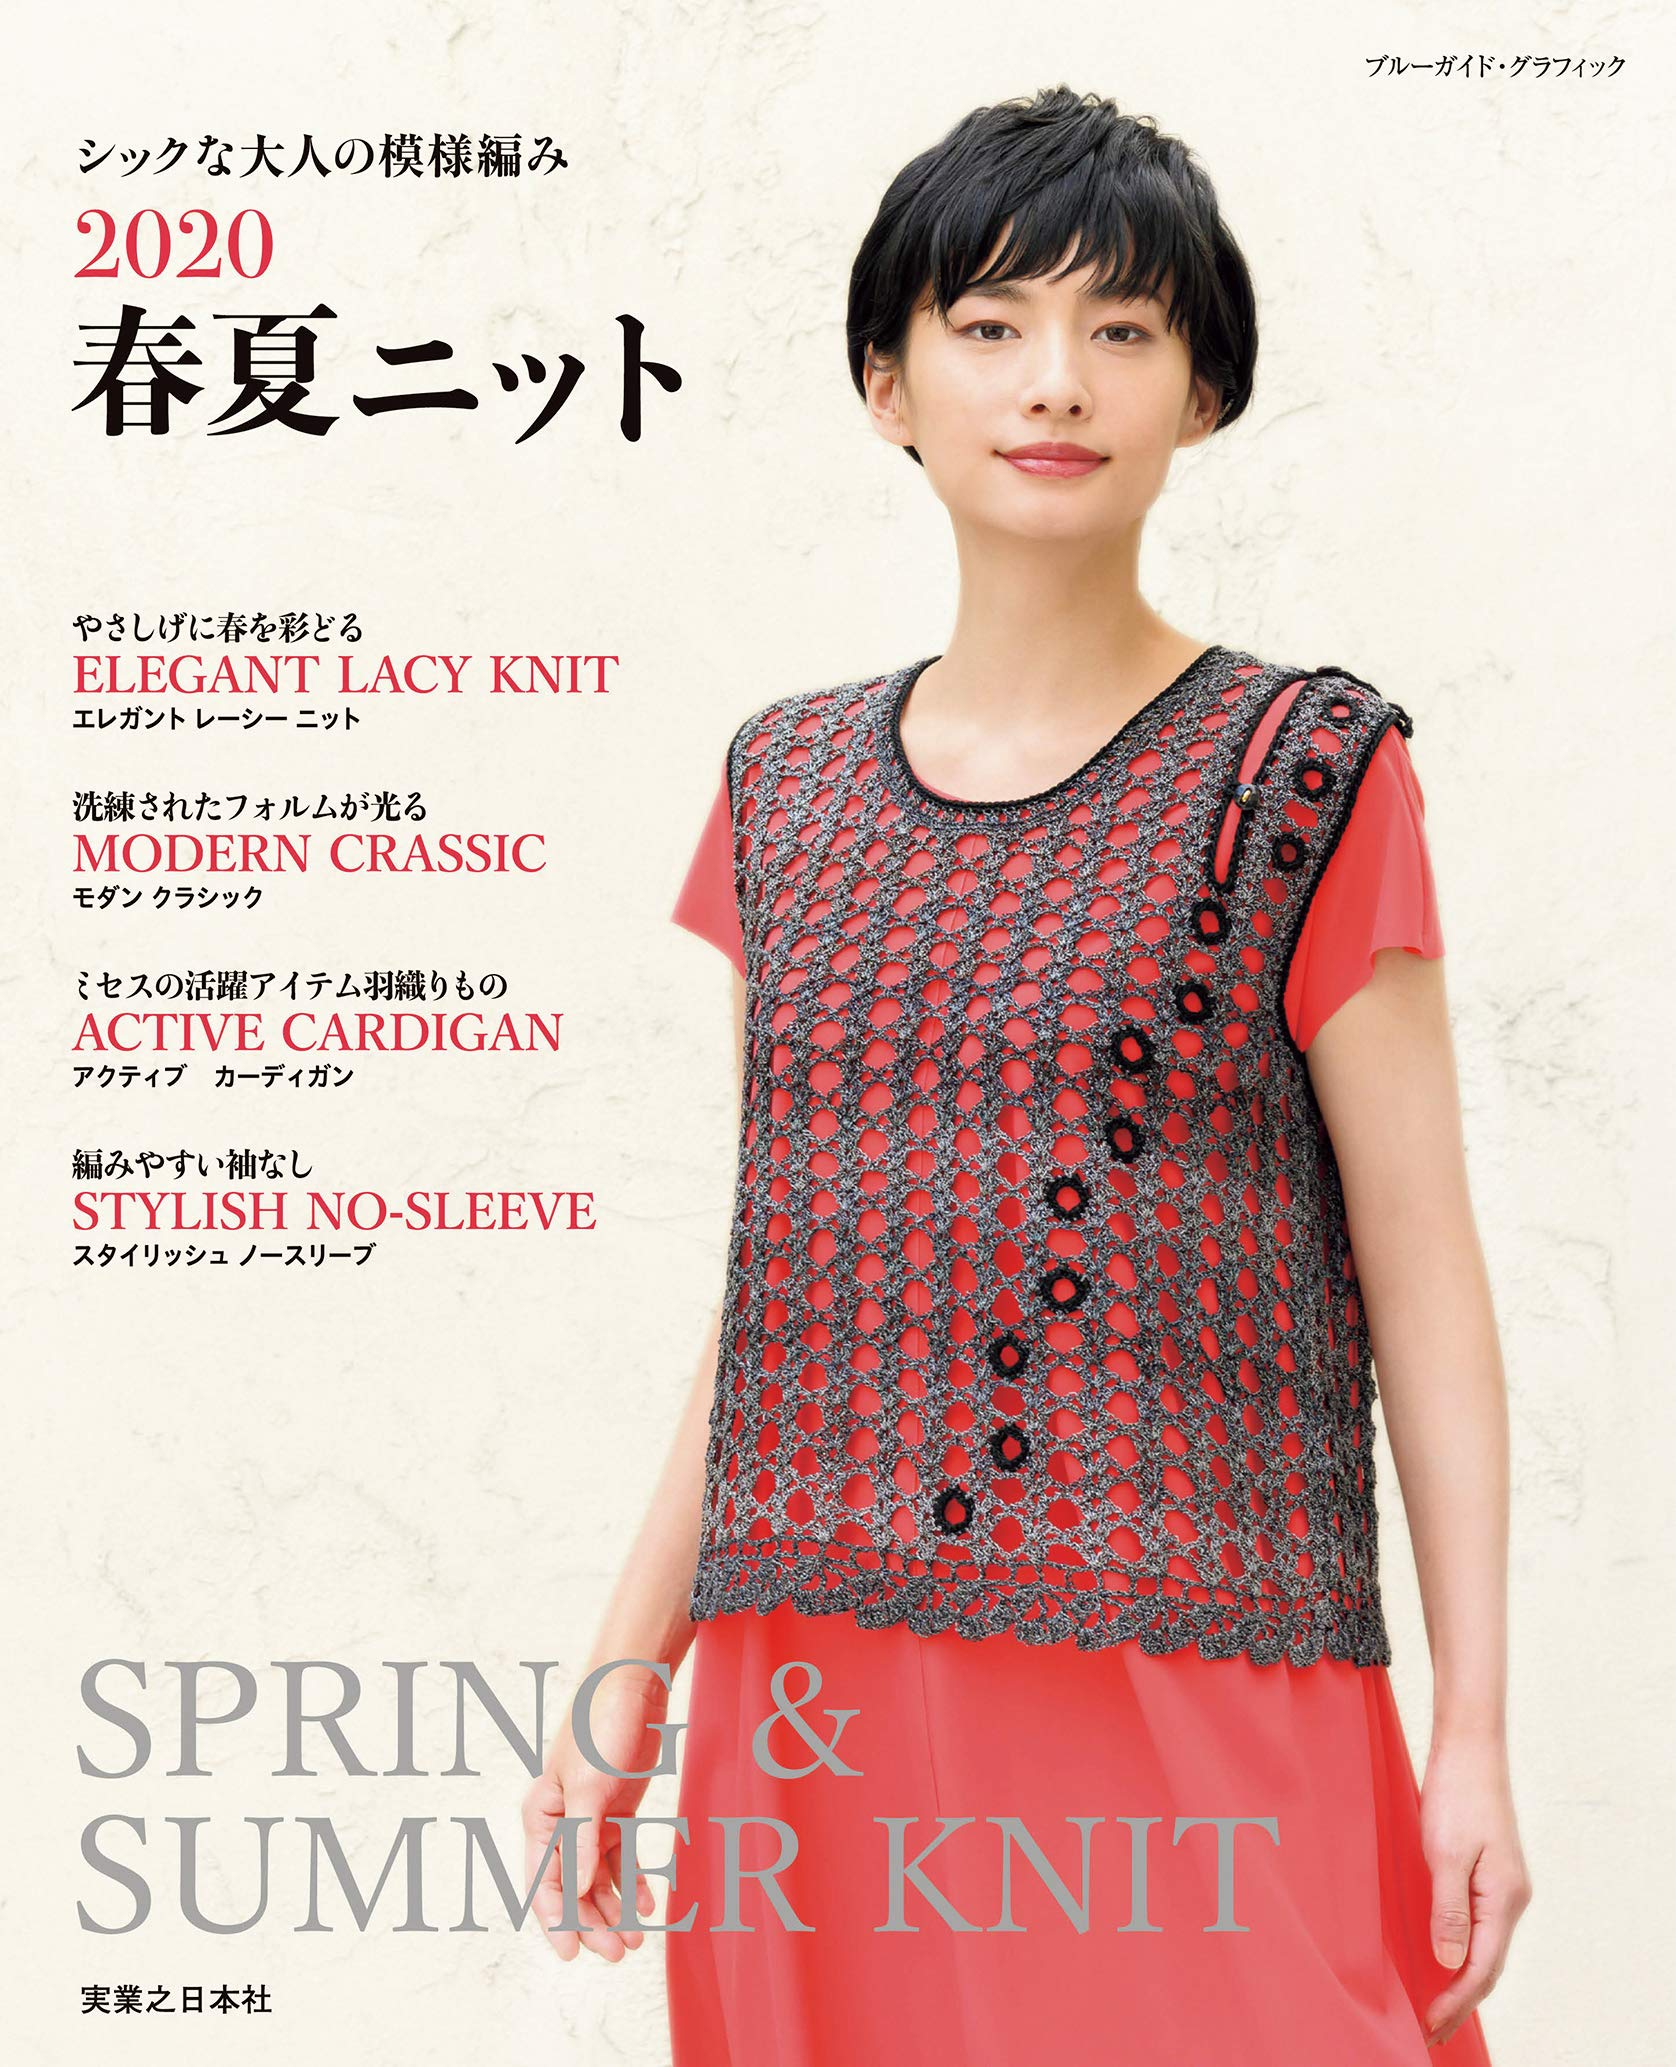 Chic adult pattern knitting spring / summer 2020